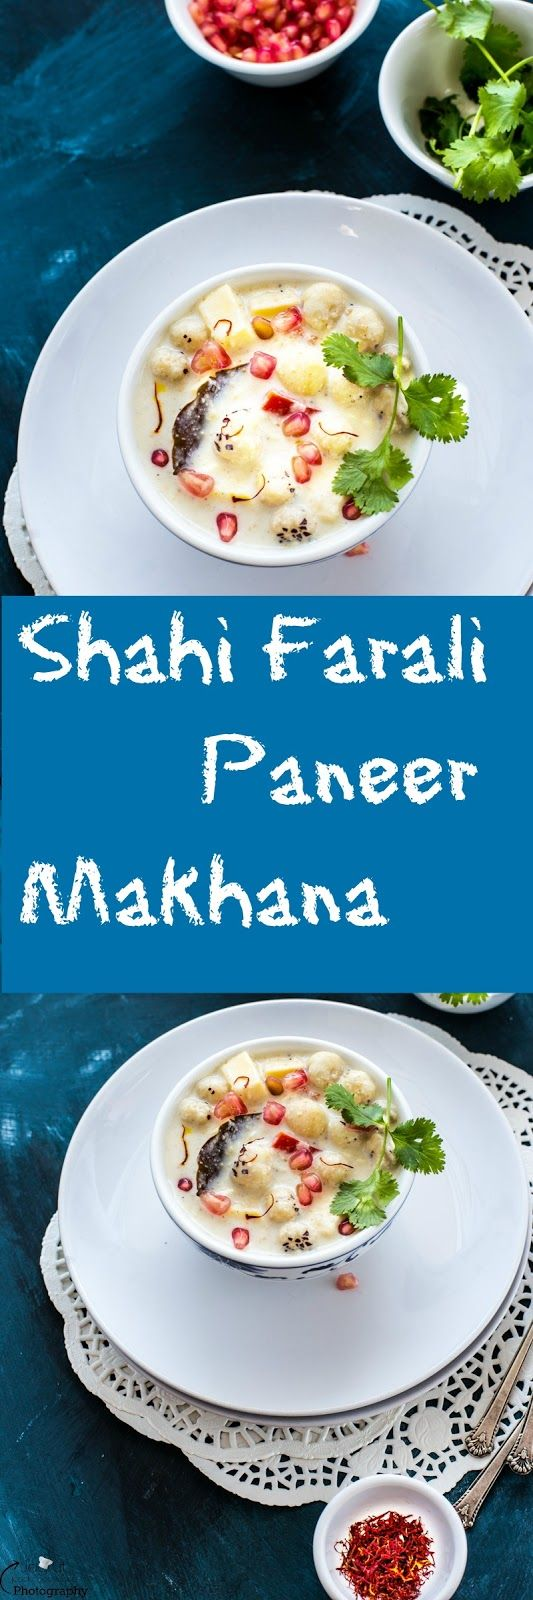 140 best Indian Food images on Pinterest | Cooking food, Easy ...